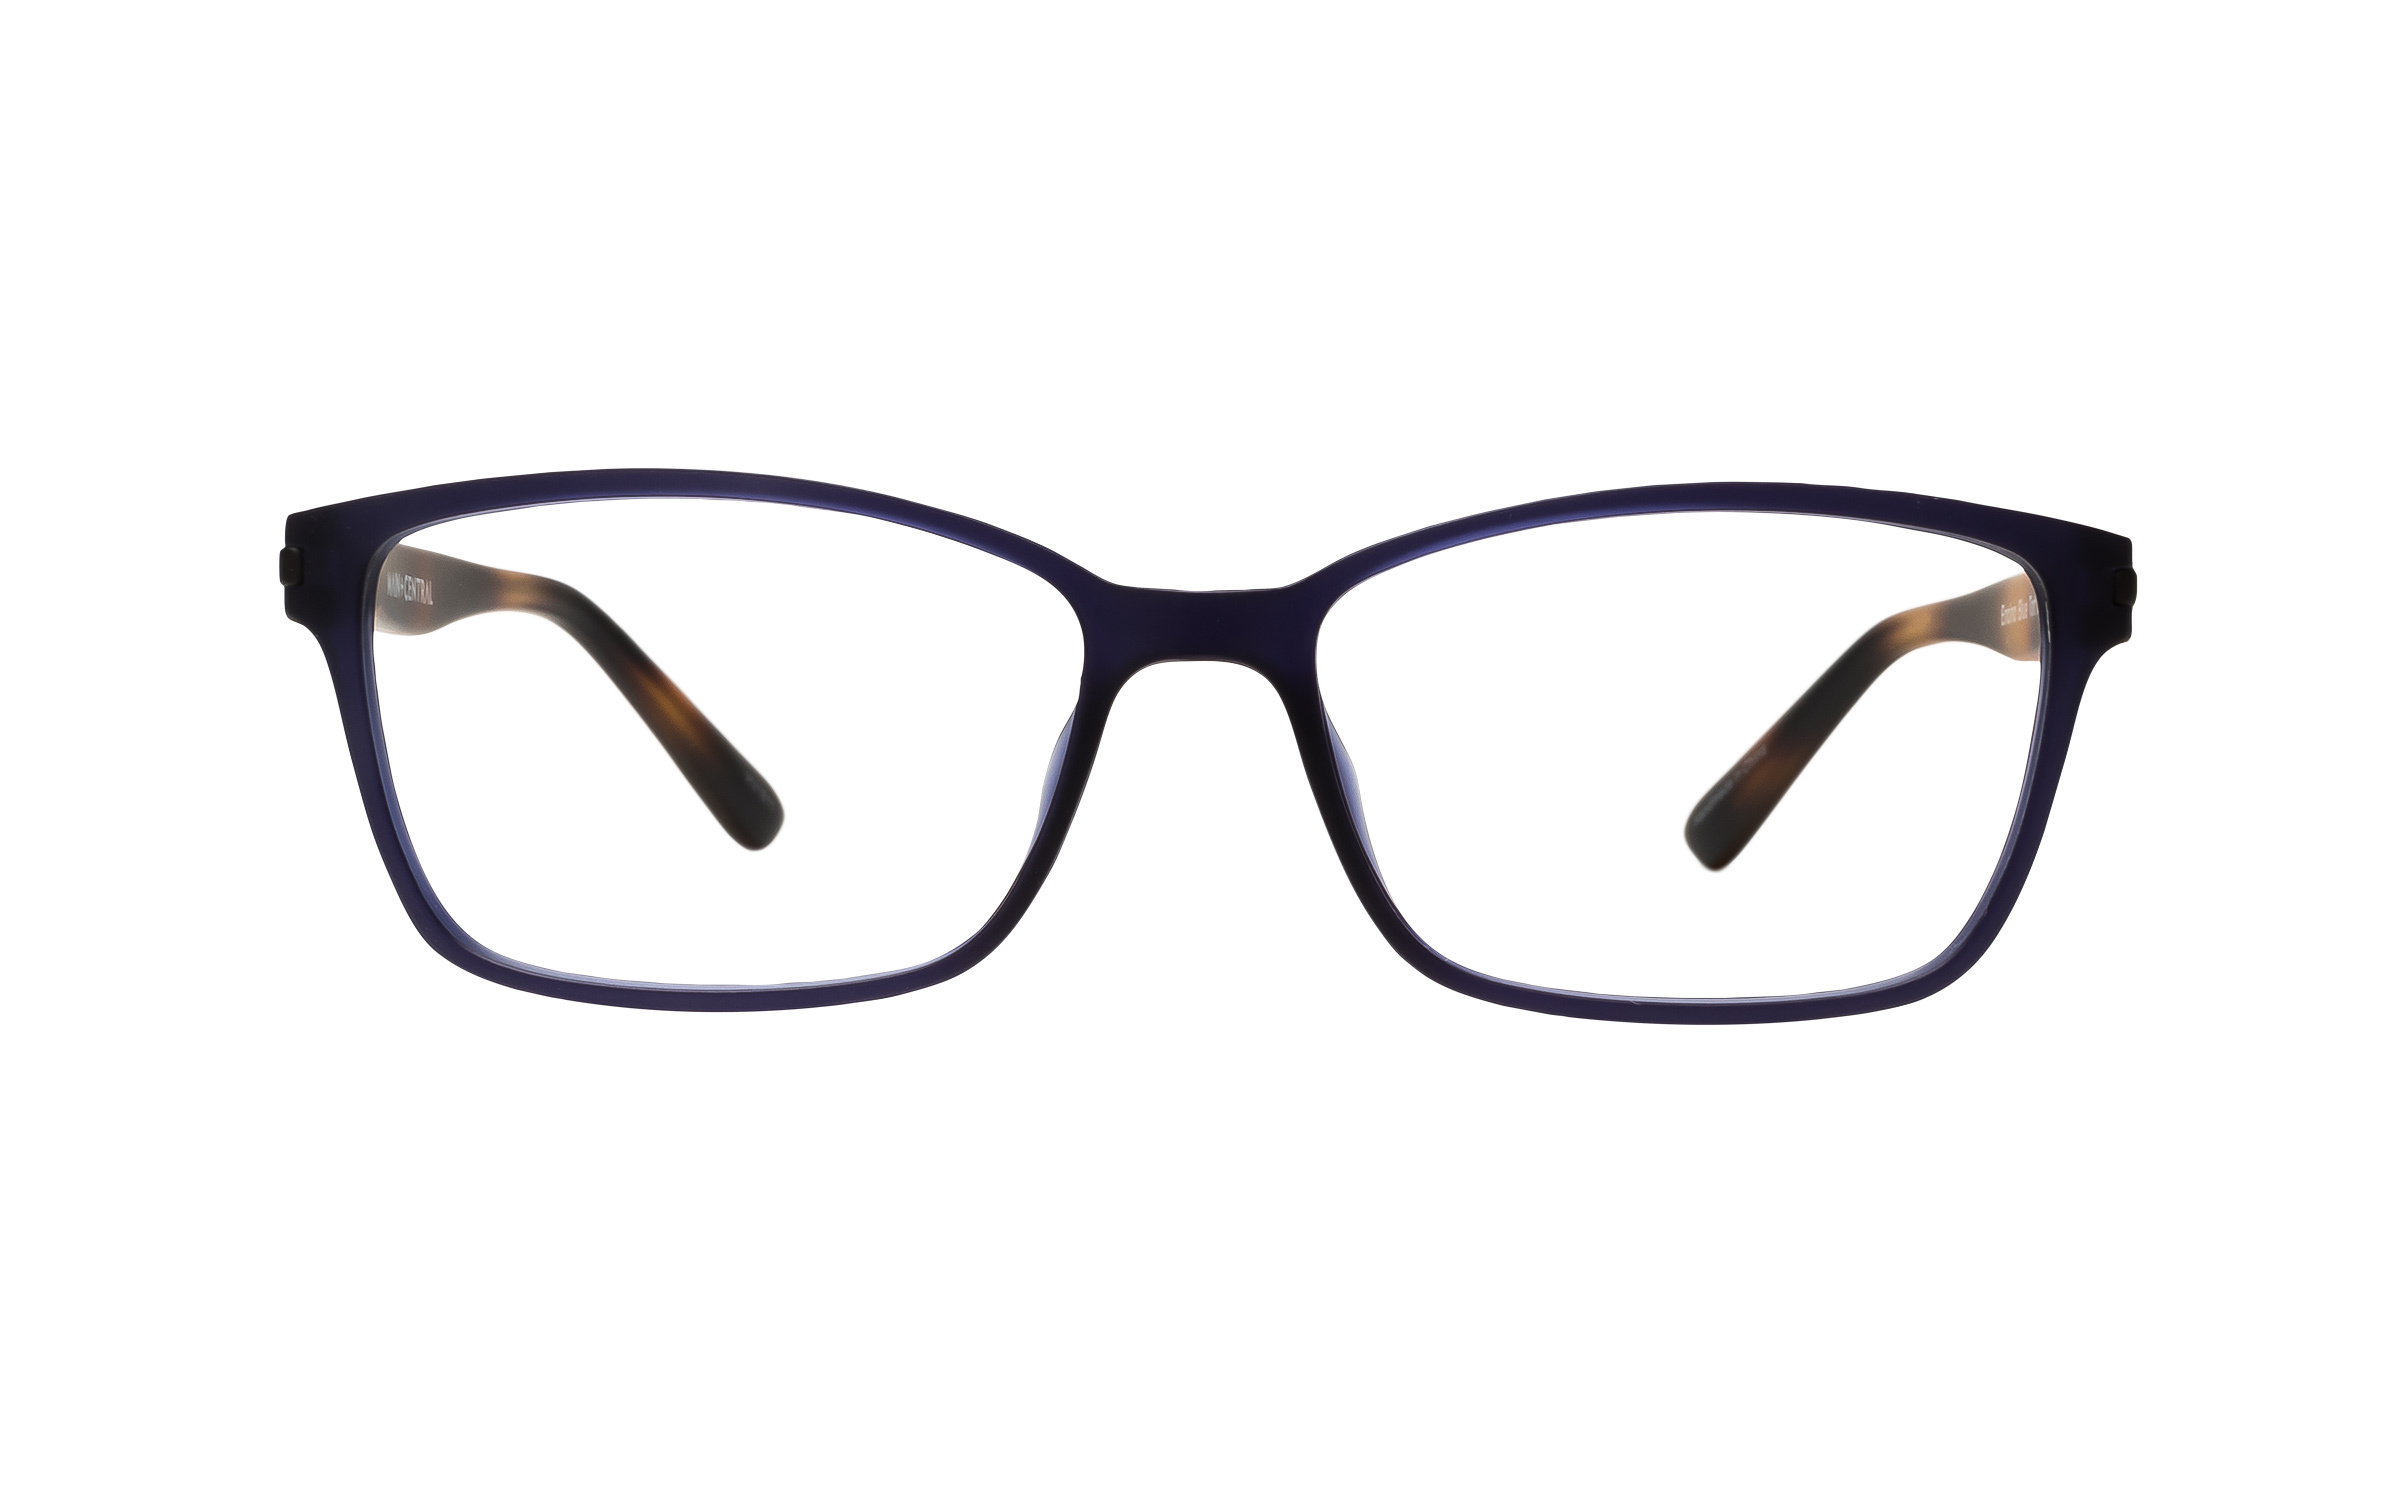 Main and Central Encino (51) Eyeglasses and Frame in Blue Tort Blue/Tortoise/Brown | Plastic